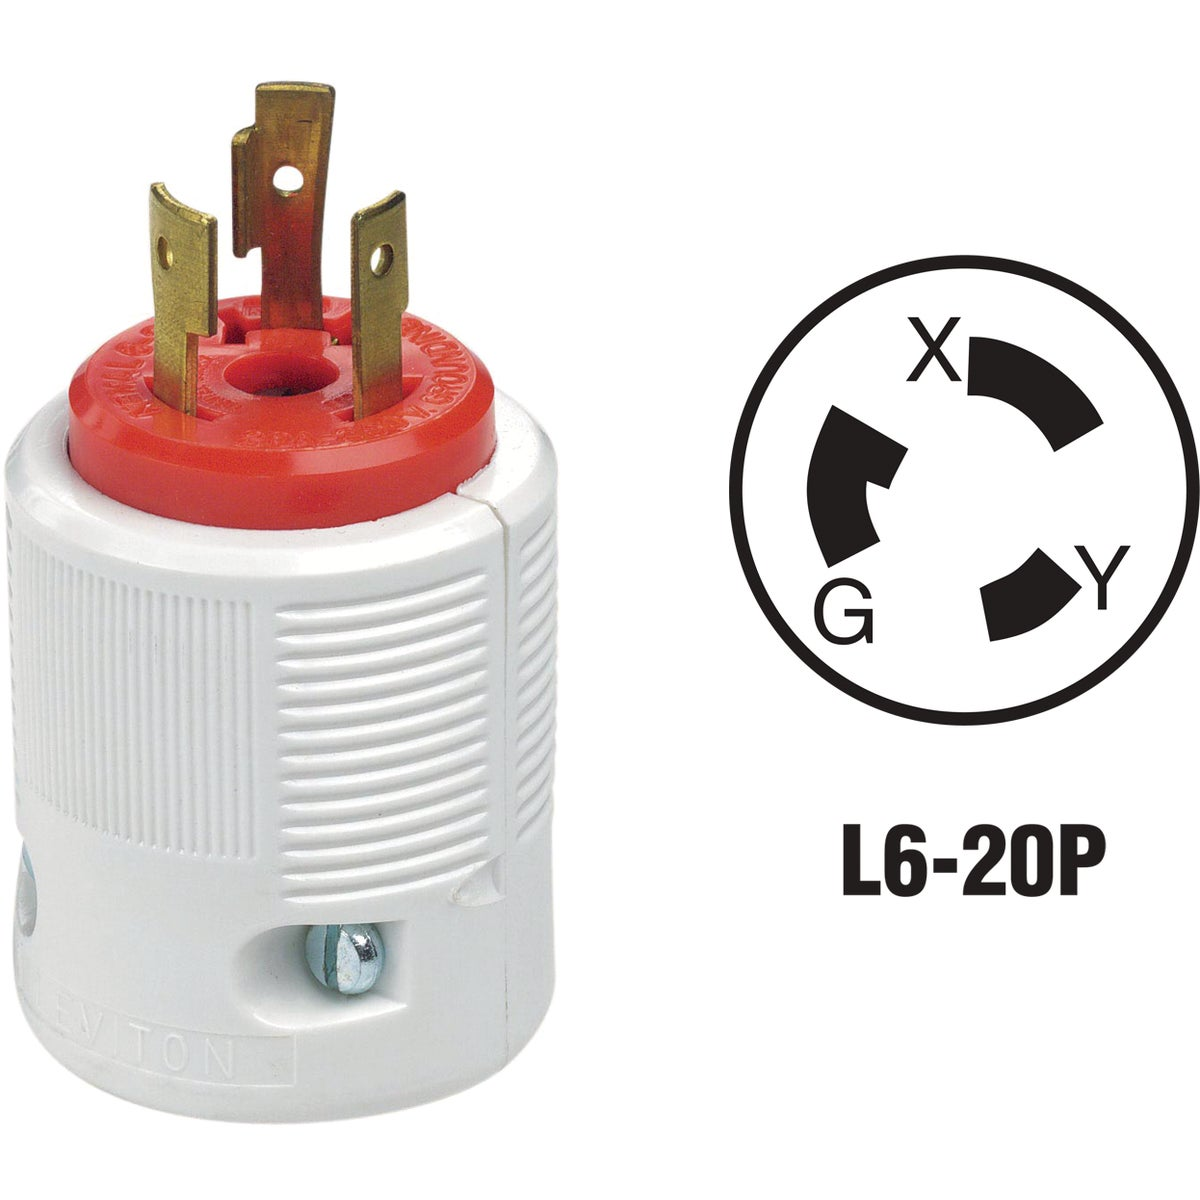 20A LOCKING CORD PLUG - 70620LP by Leviton Mfg Co